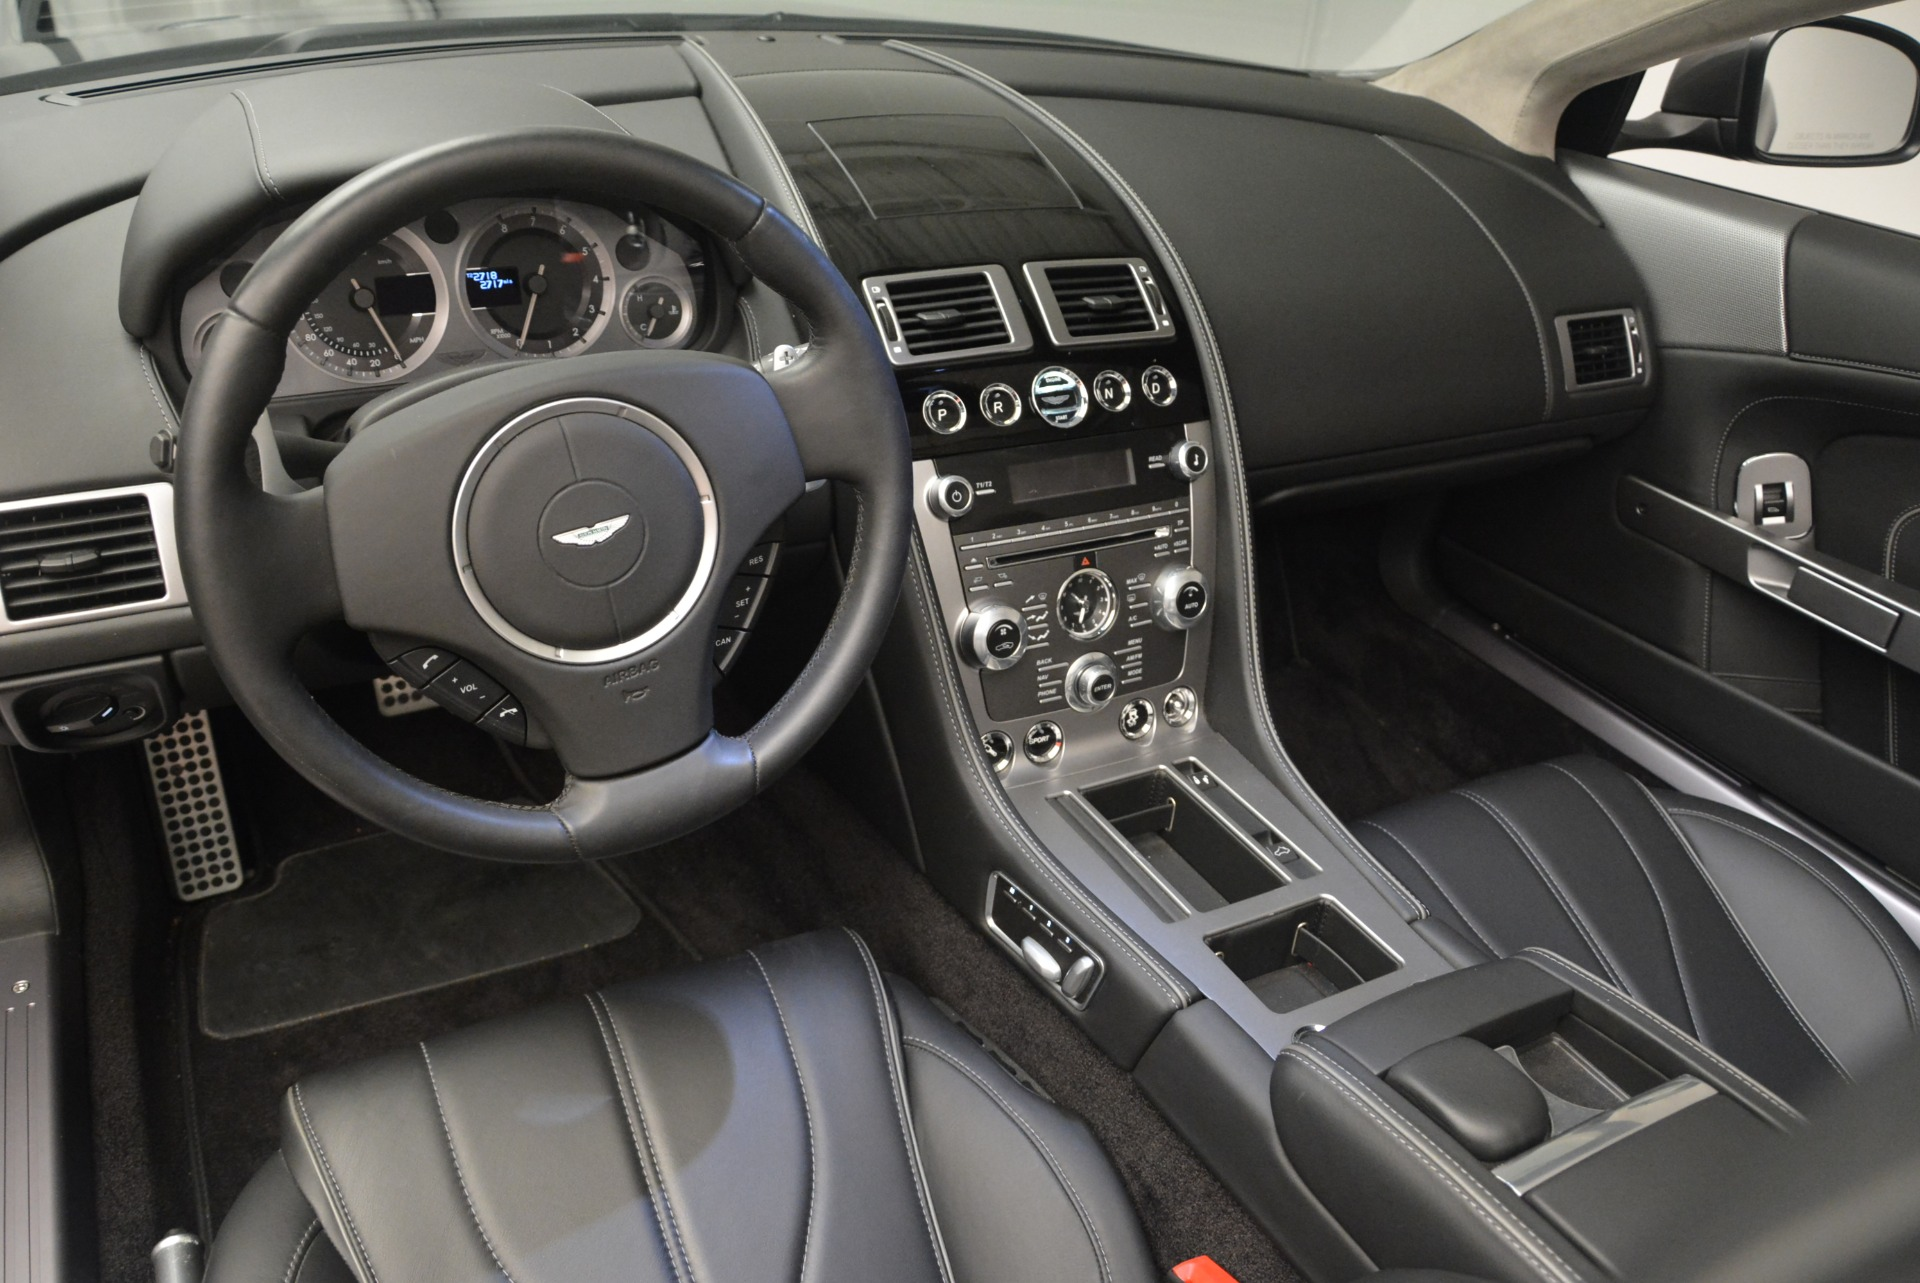 Used 2014 Aston Martin DB9 Volante For Sale In Westport, CT 2319_p26